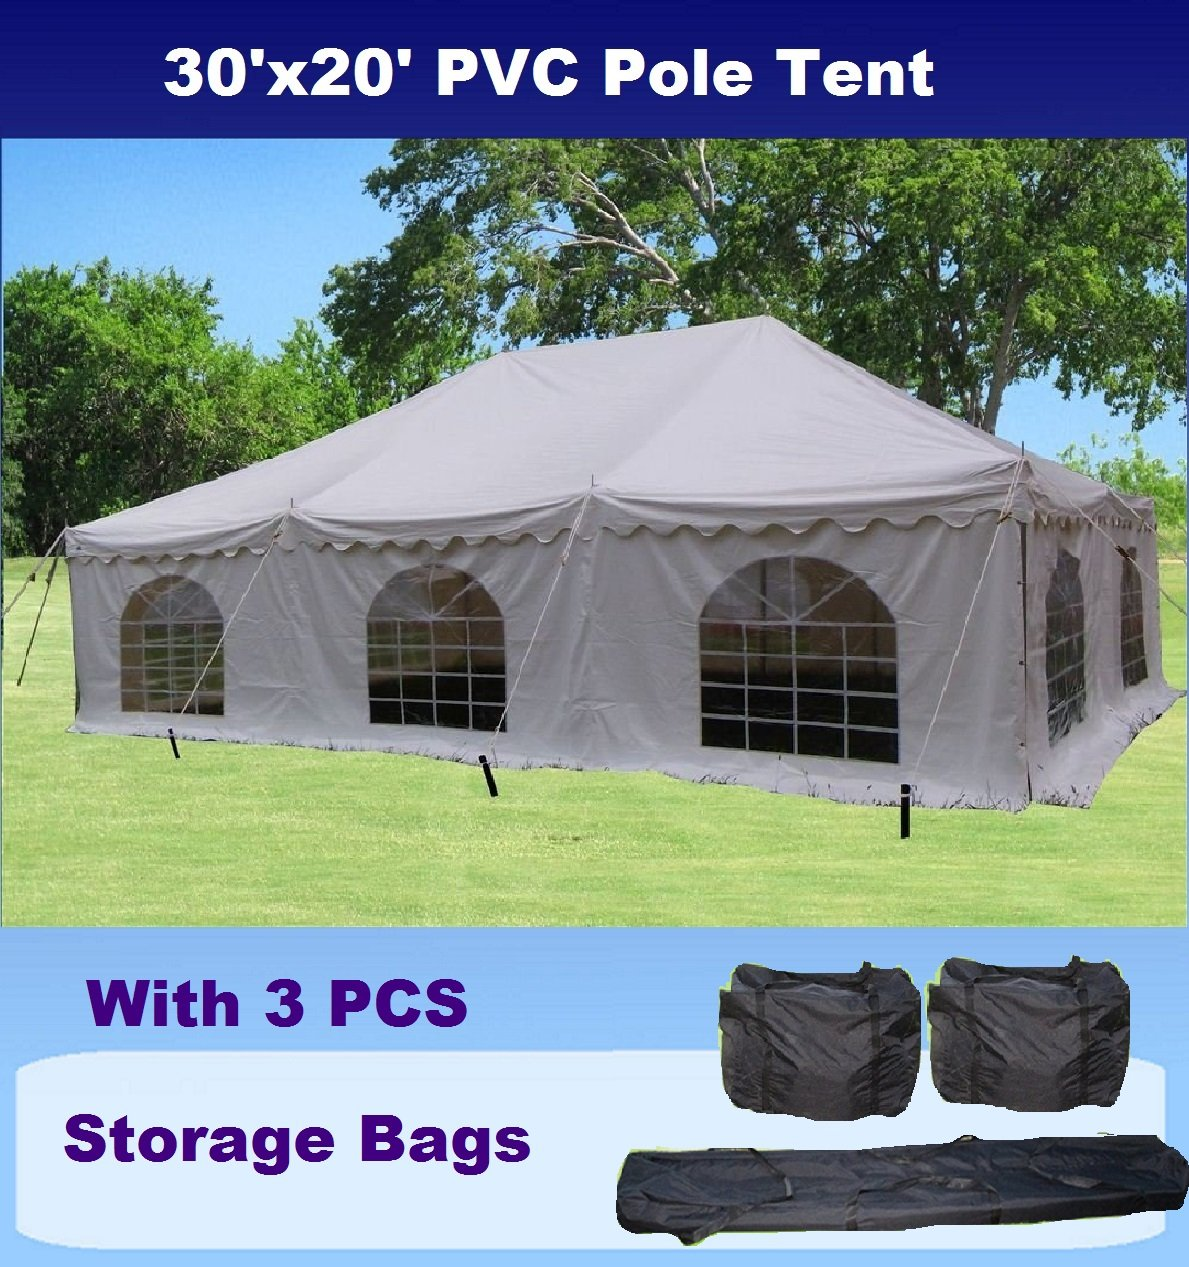 Amazon.com  30u0027x20u0027 PVC Pole Tent - Heavy Duty Wedding Party Canopy Shelter - with Storage Bags - By DELTA Canopies  Garden u0026 Outdoor & Amazon.com : 30u0027x20u0027 PVC Pole Tent - Heavy Duty Wedding Party ...